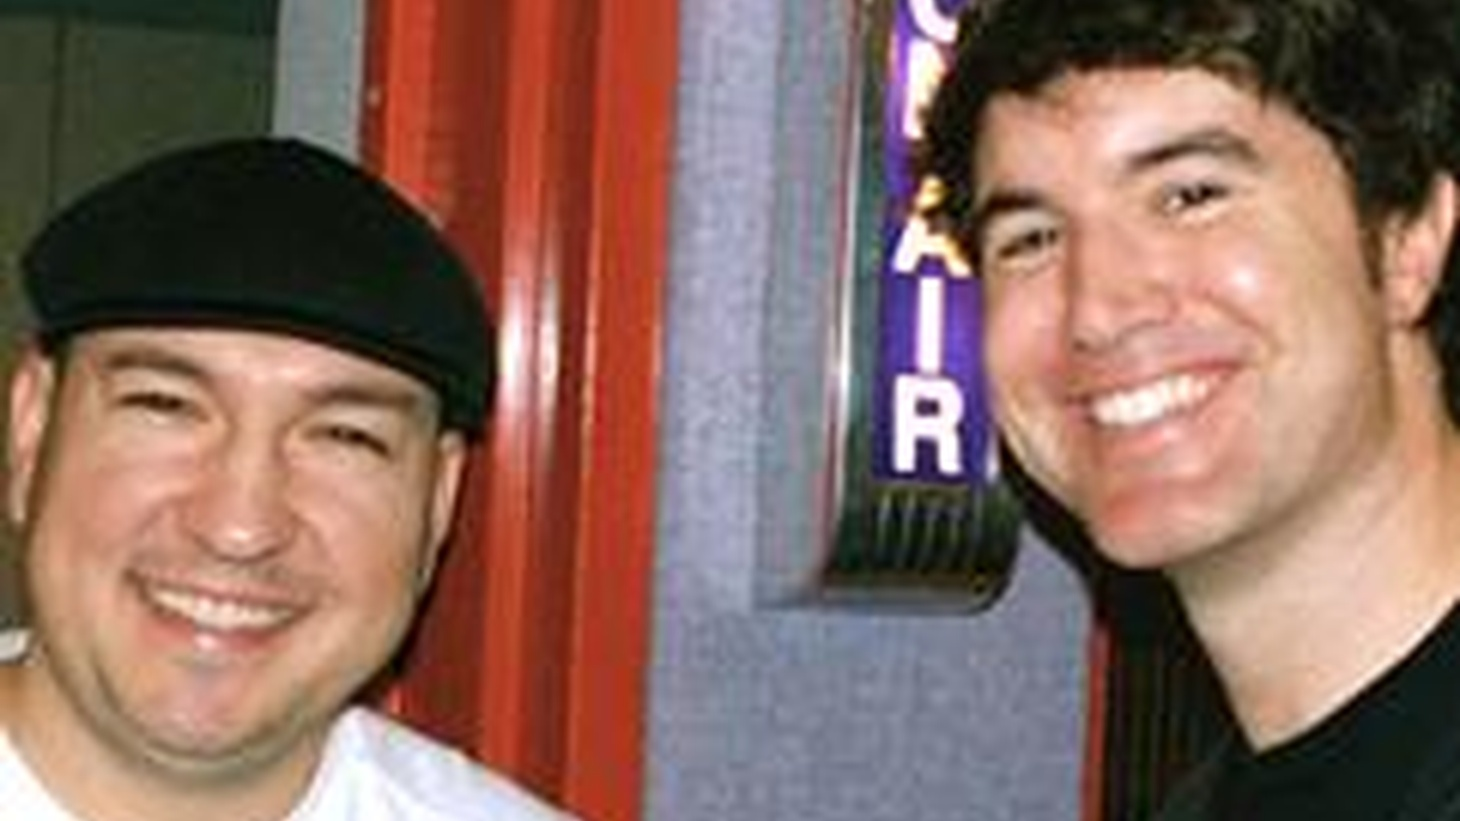 """As the co-founder and president of MySpace, Tom Anderson is everyone's first """"friend."""" Among his friends on the popular social networking site are millions of bands from around the world. Tom tells DJ Raul Campos about the band that inspired him to keep his gear when he was a frustrated musician..."""